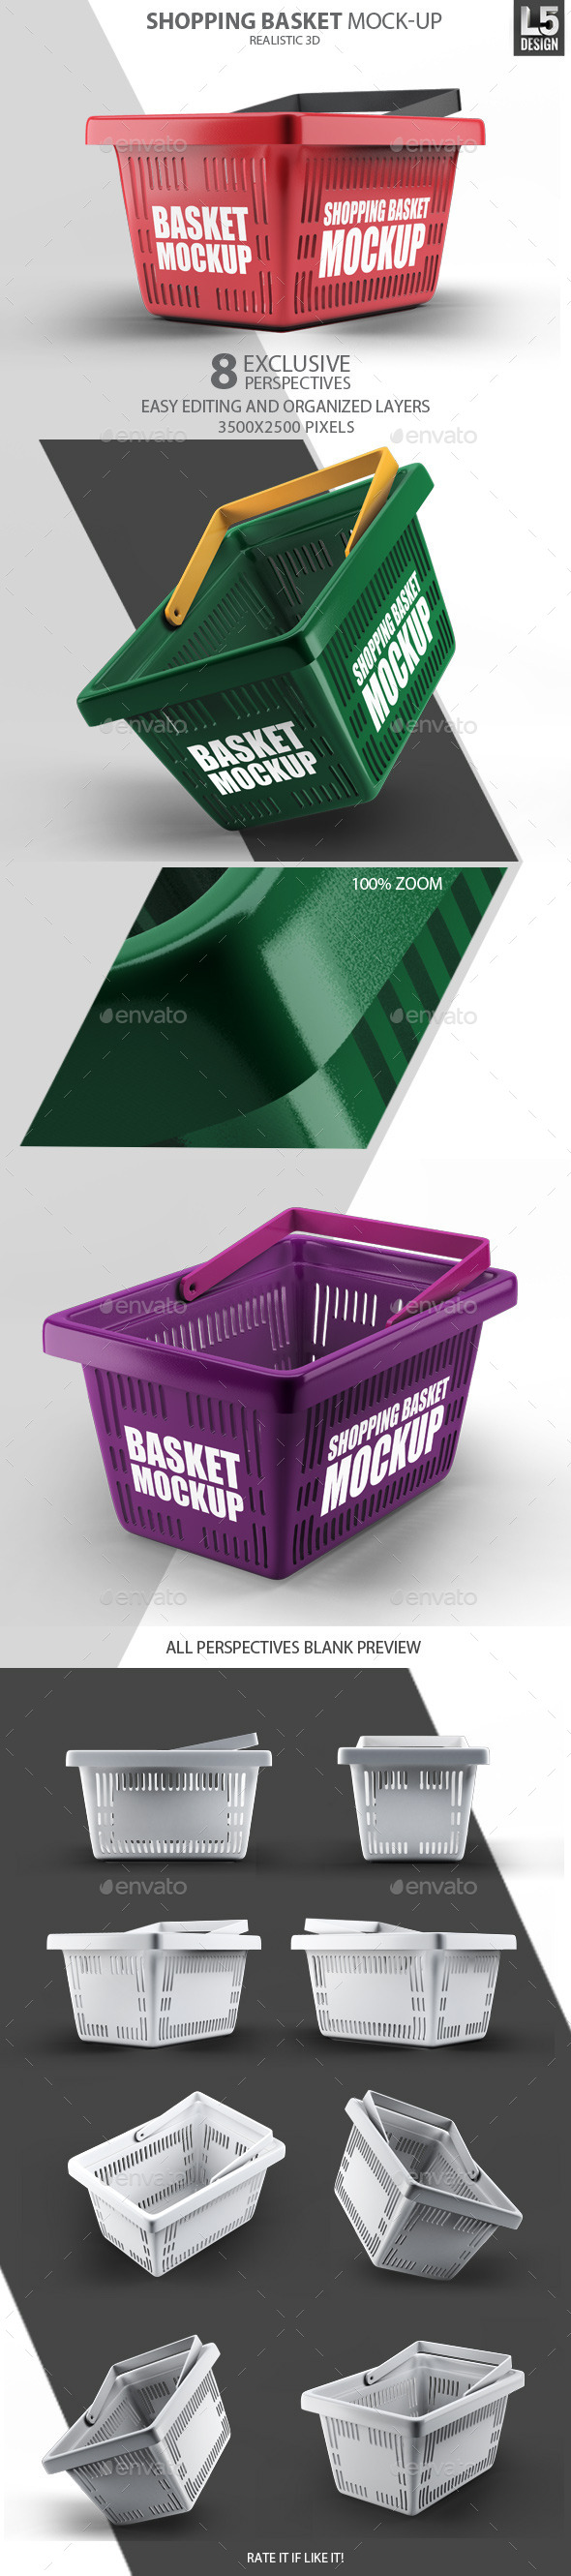 GraphicRiver Shopping Basket Mock-Up 11048708